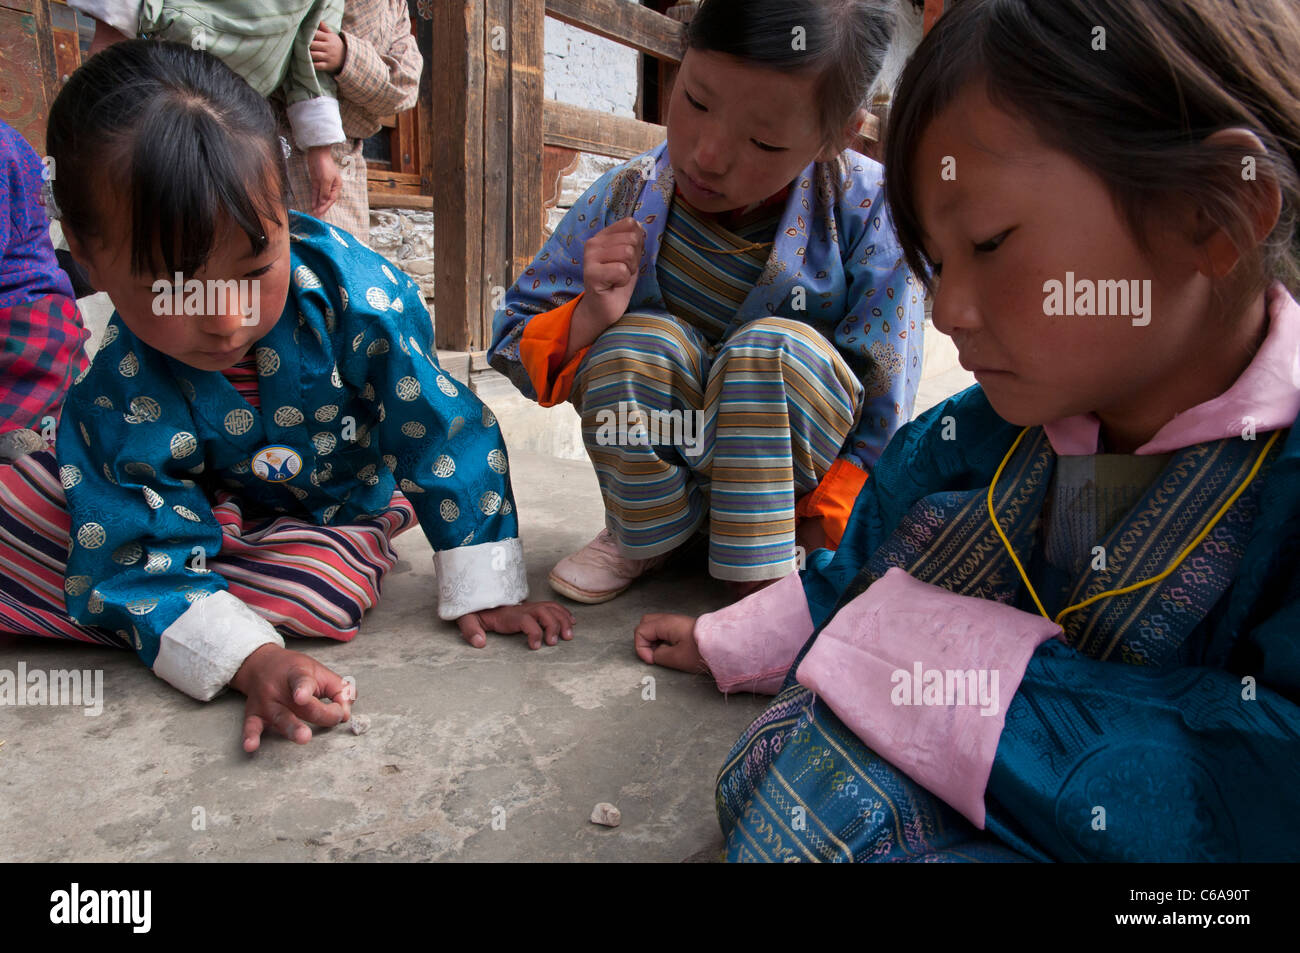 young schoolgirls playing together. Ura boarding school. Bhutan - Stock Image